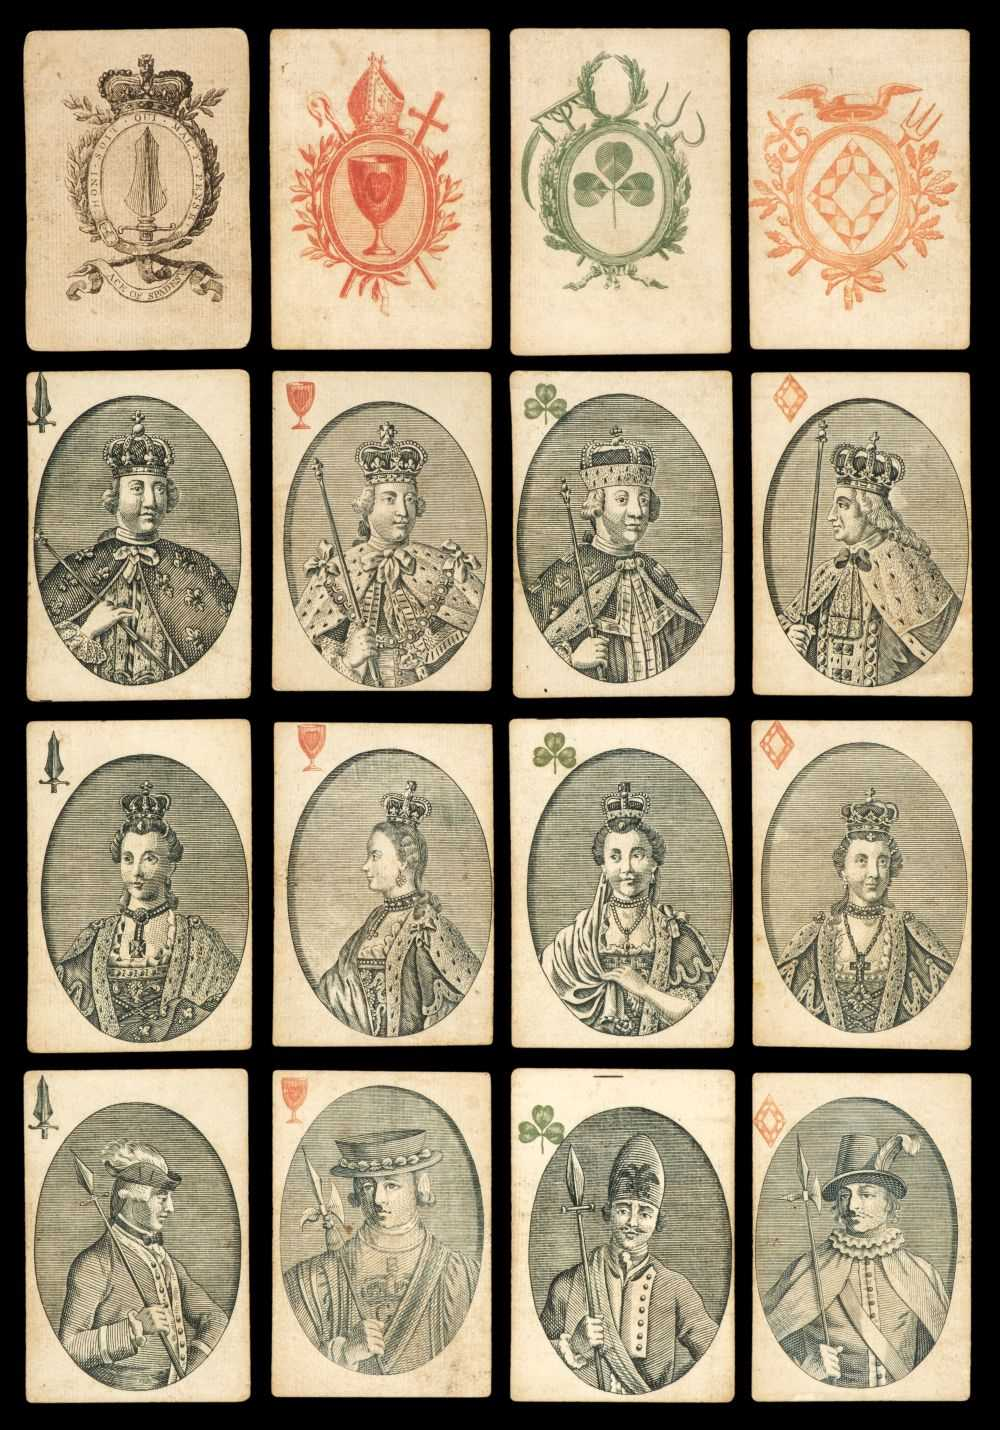 Lot 466 - Playing cards. A deck of playing cards, London: Rowley & Co., between 1774 & 1776